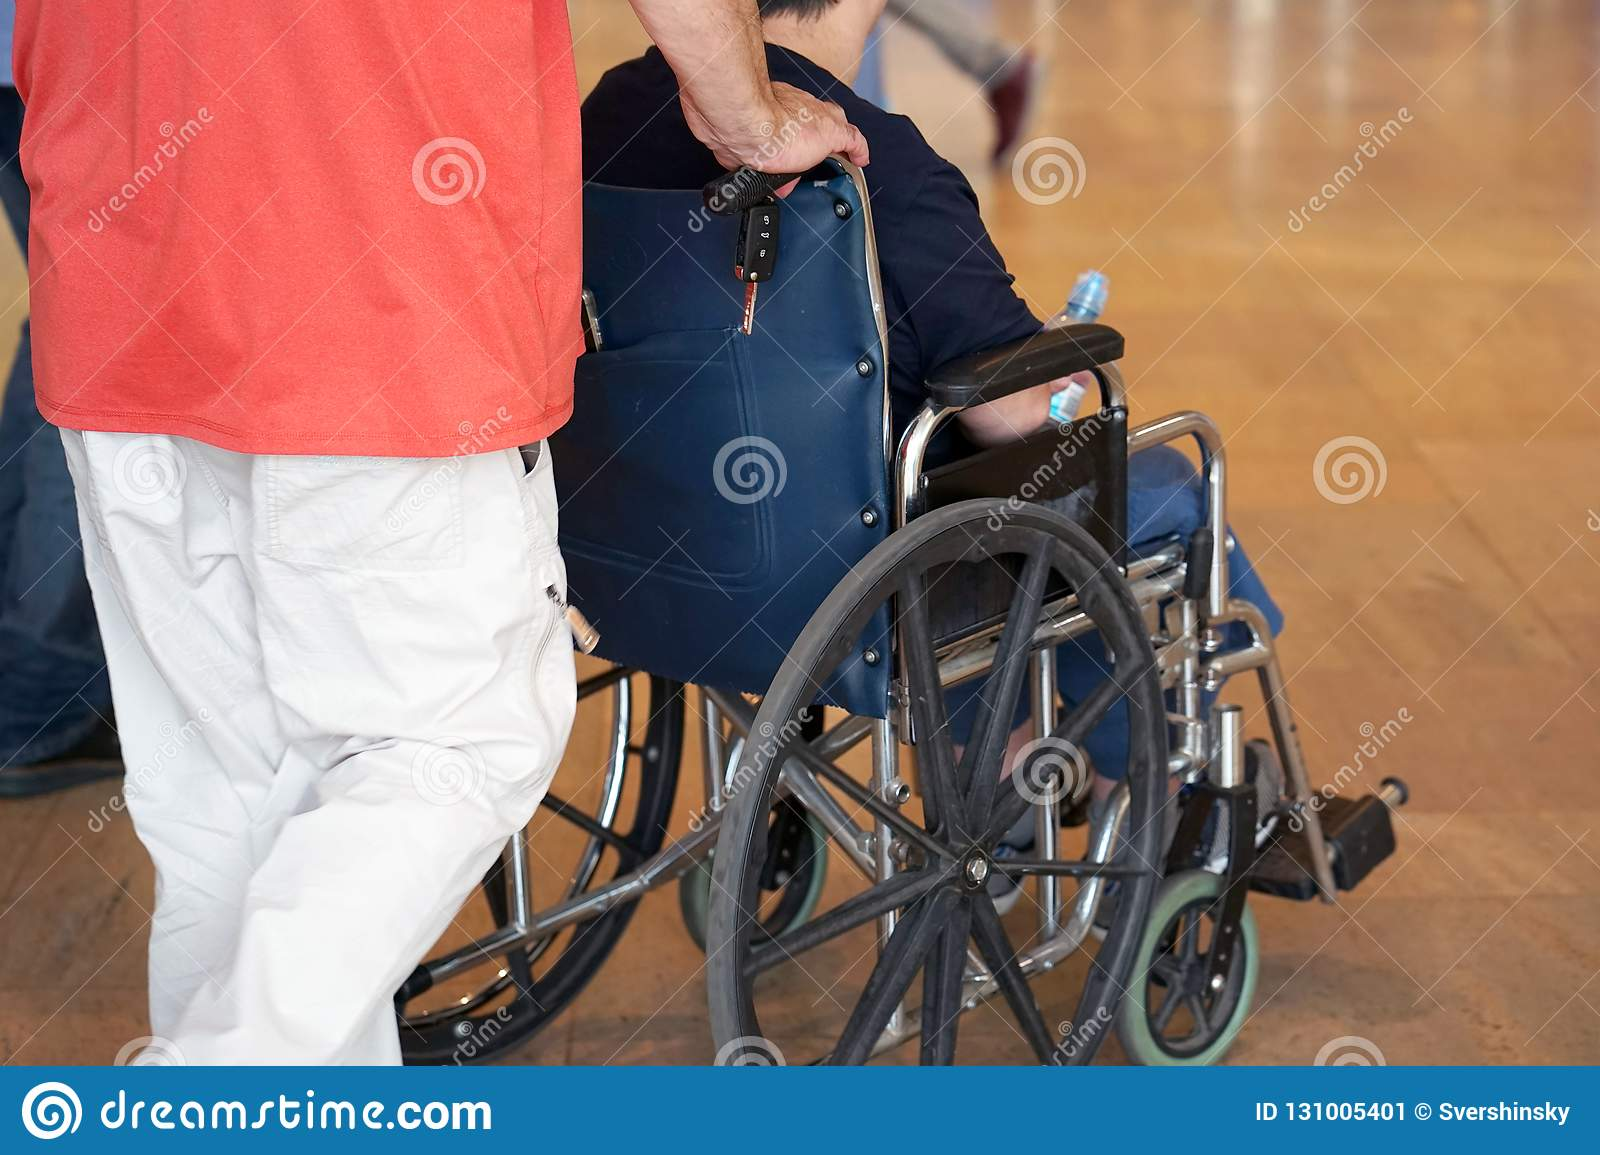 The man carries a disabled person in a wheelchair